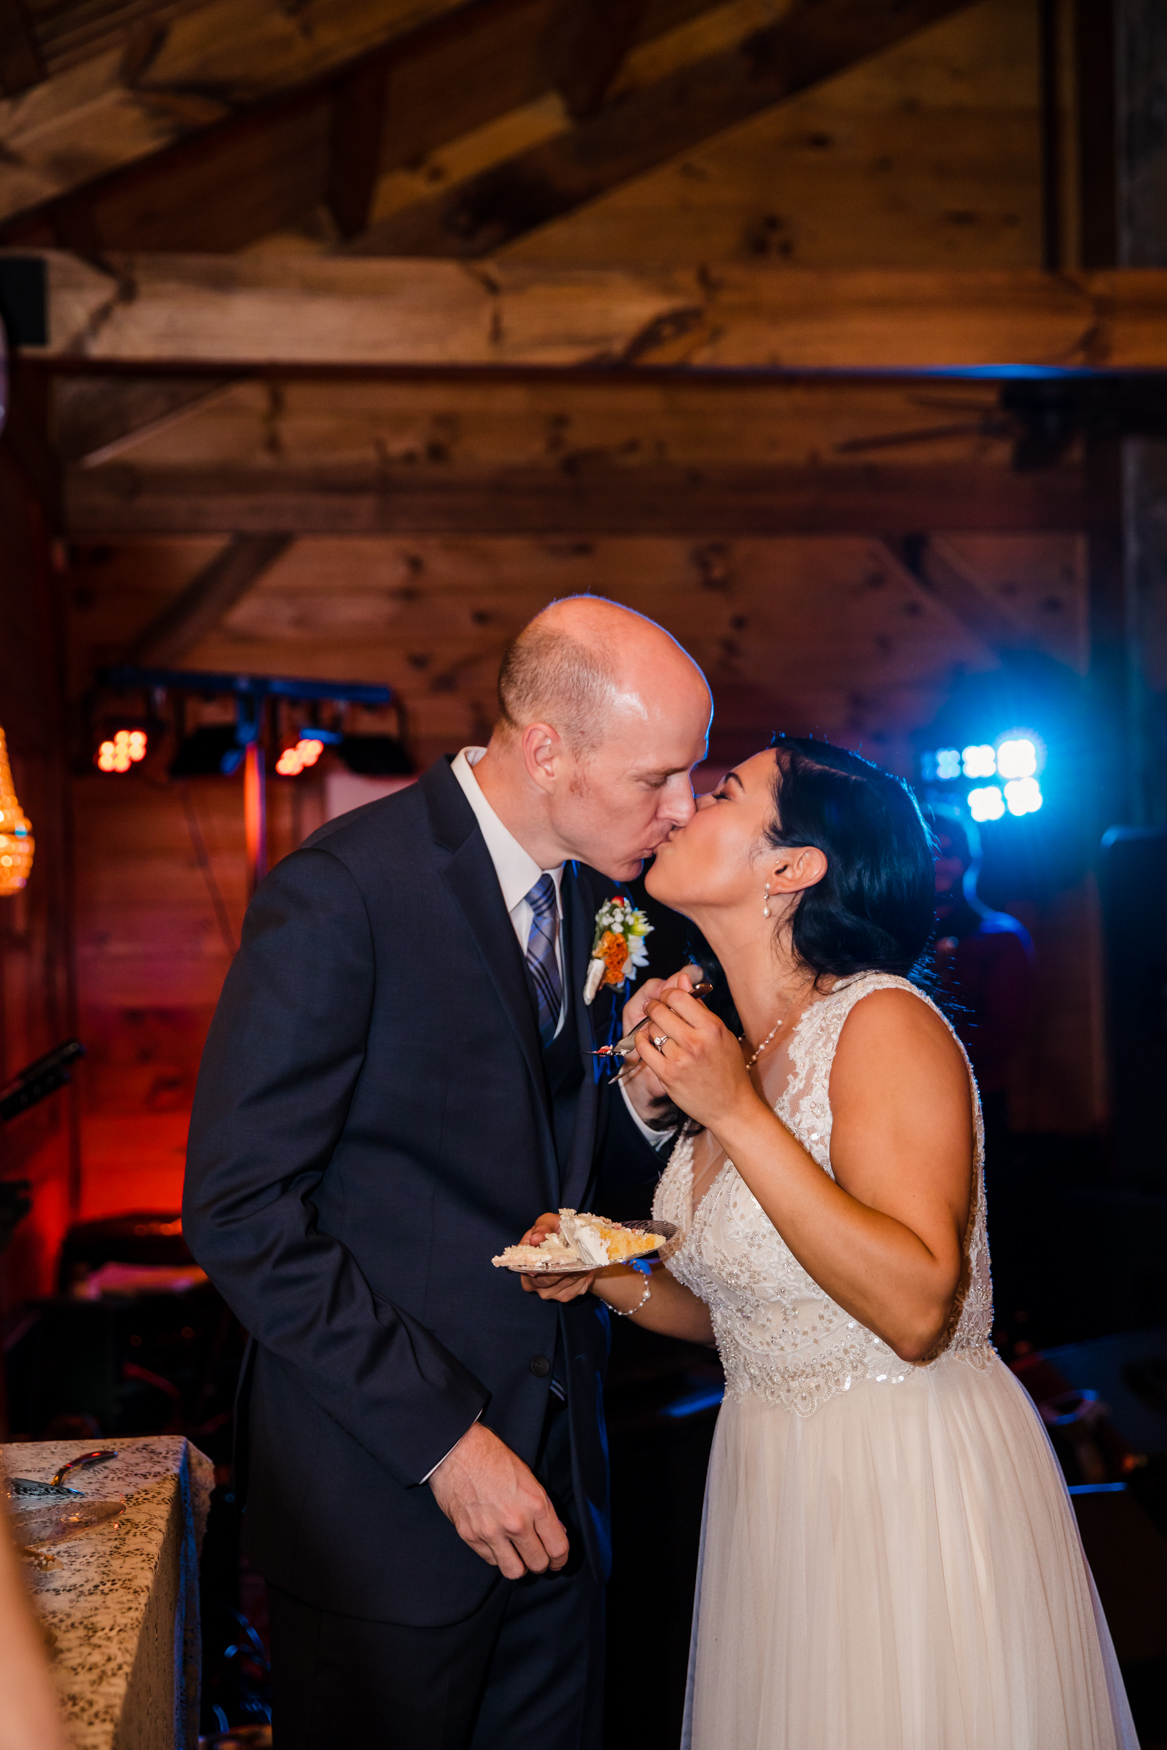 Cake Cutting Waynesville NC Wedding Photography Inn at Tranquility Farm